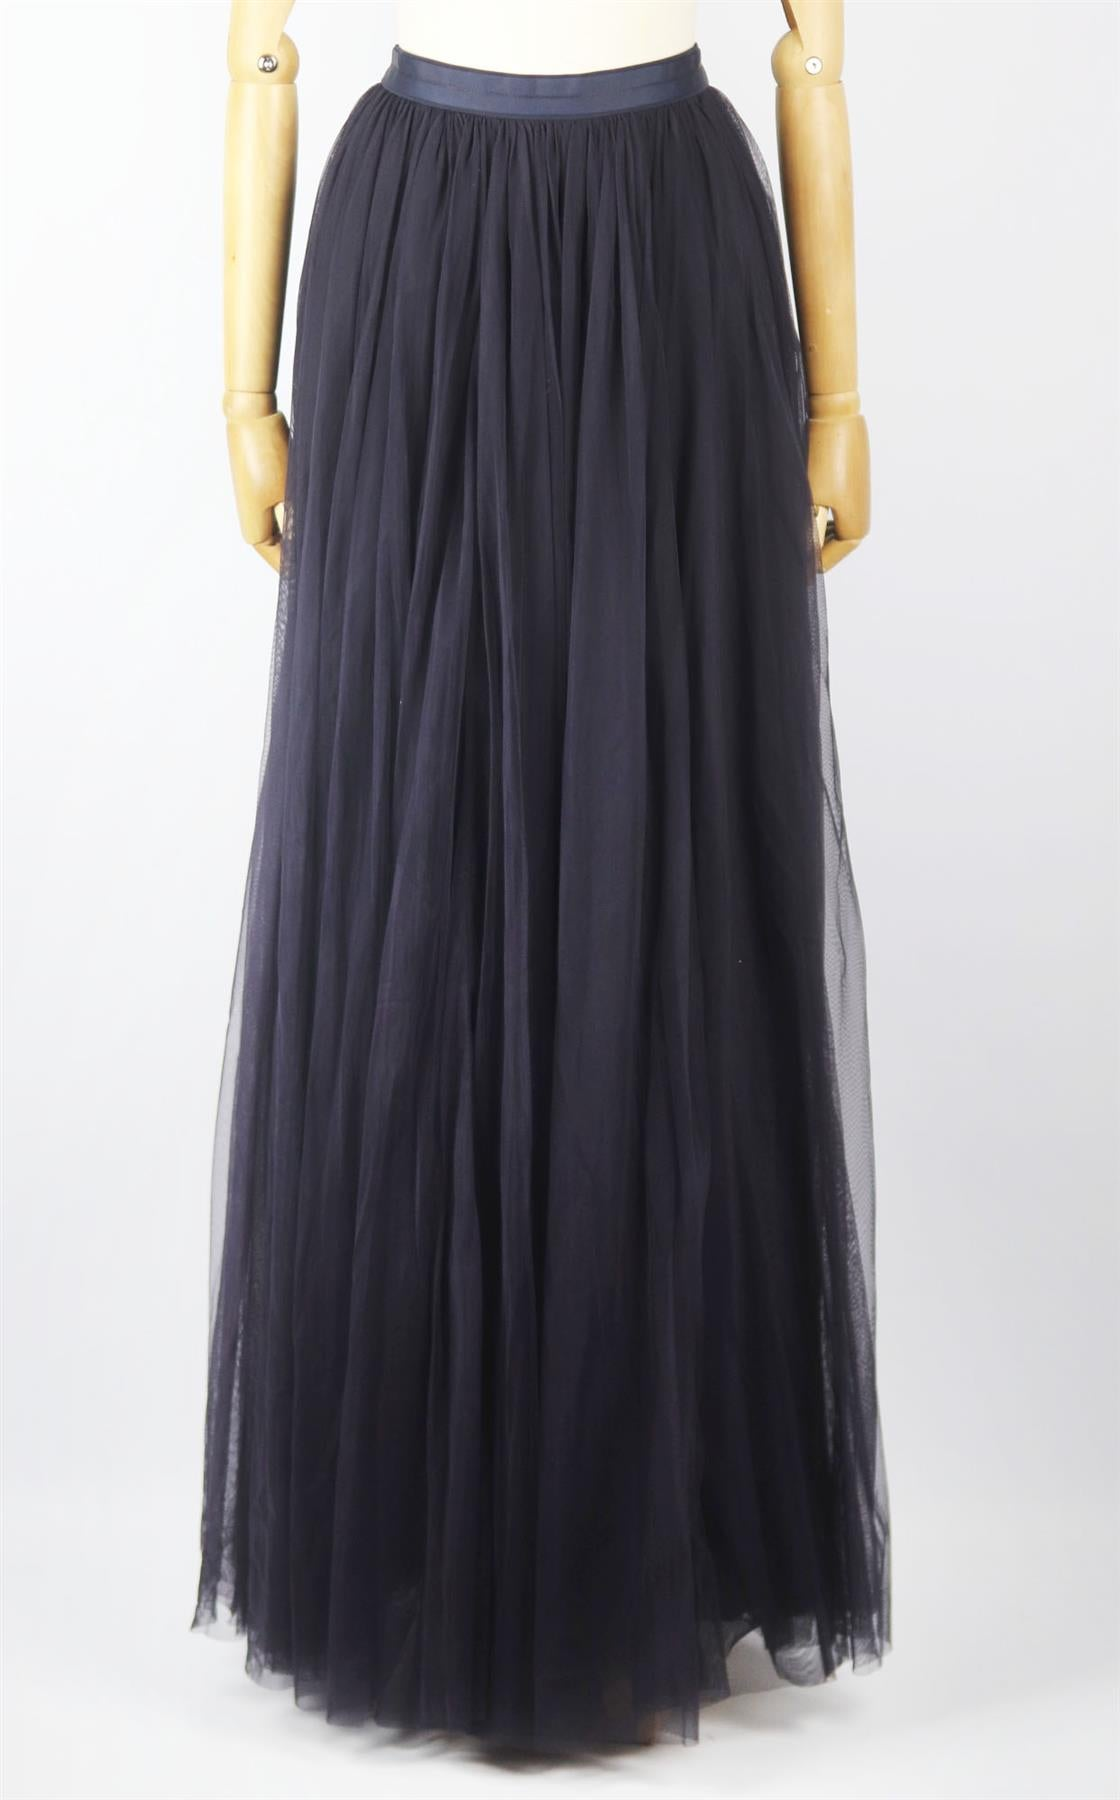 NEEDLE AND THREAD TULLE MAXI SKIRT UK 6